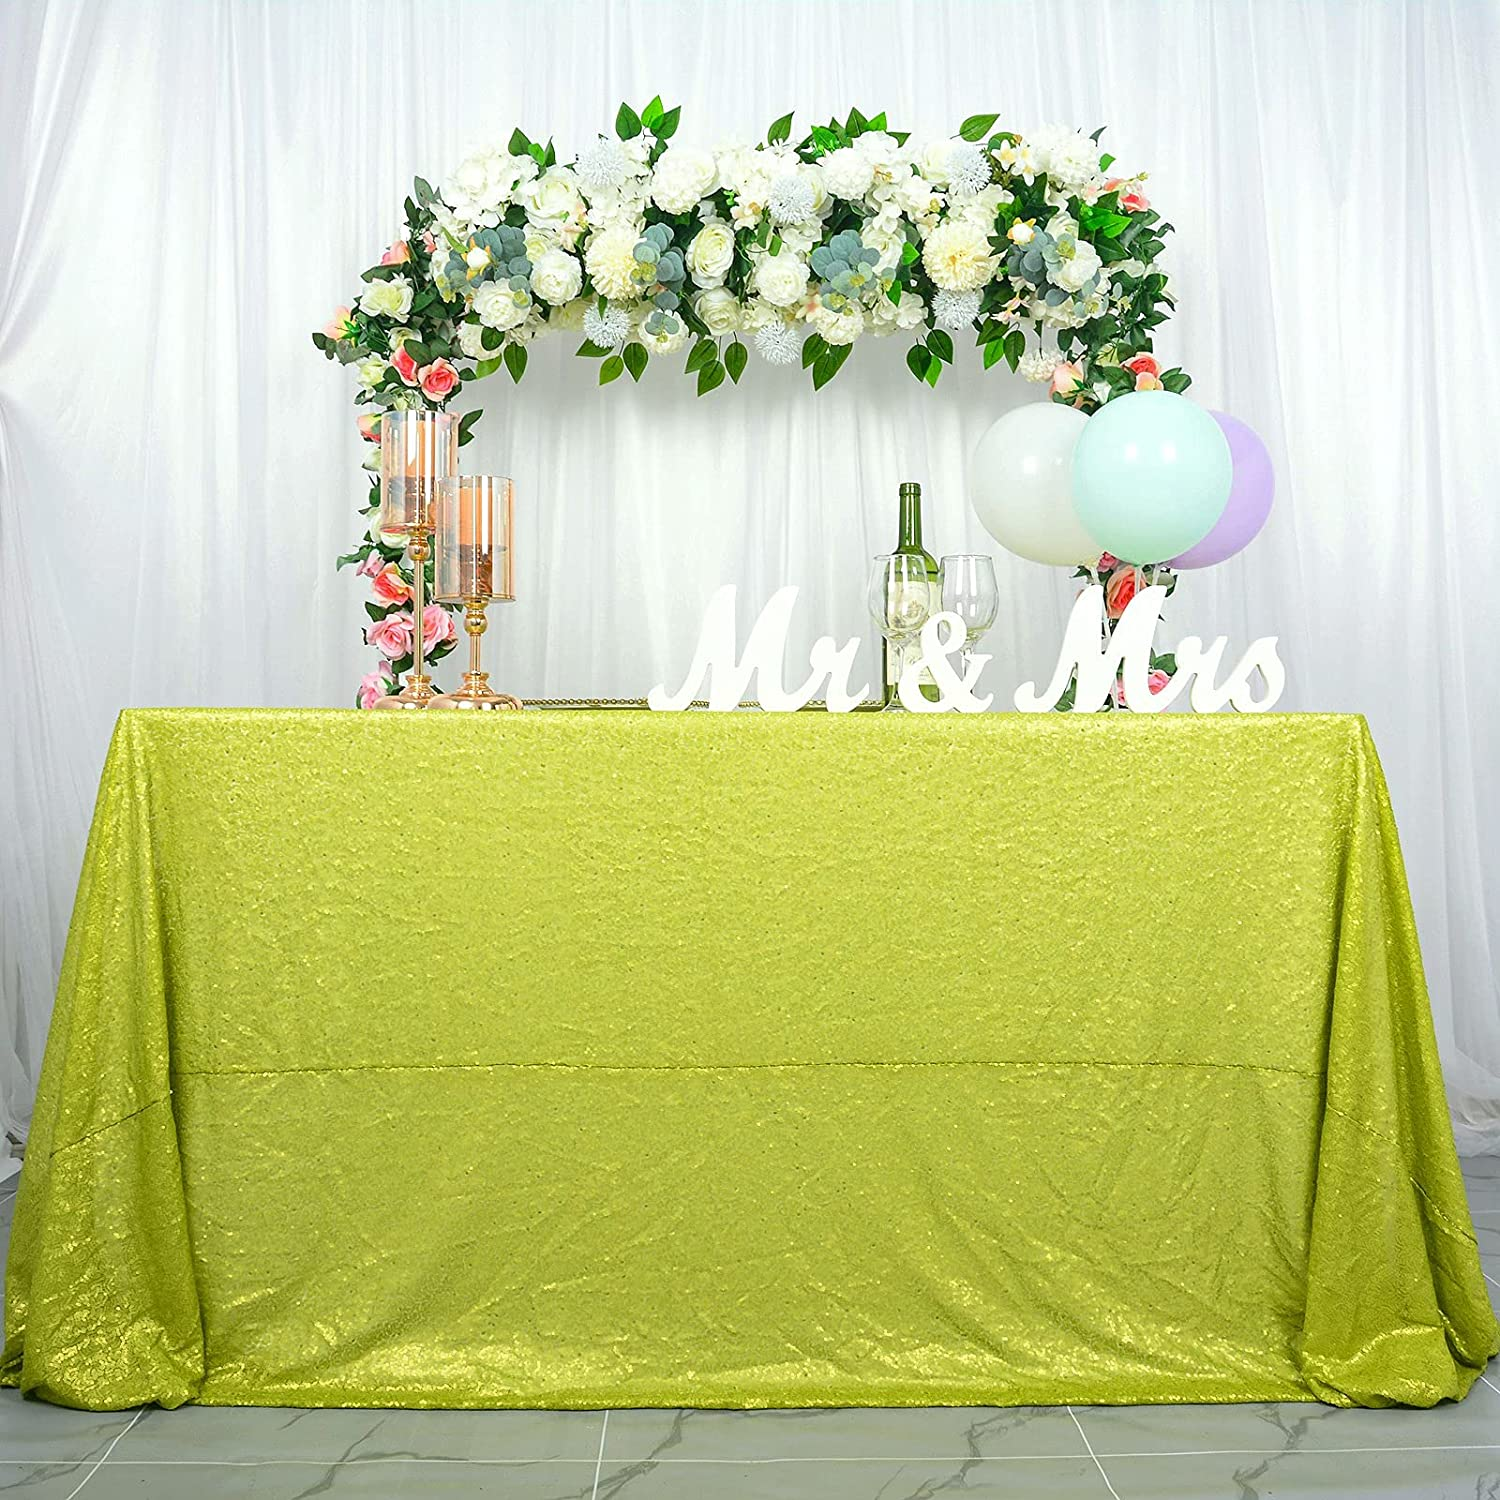 Sequin Tablecloth 50''x80'' Lime Green Rectangle Tablecloth Fabric Table Cover Shimmer Table Linen Cake Table Cloth for Wedding Party Event Decor (50x80'', Lime Green)